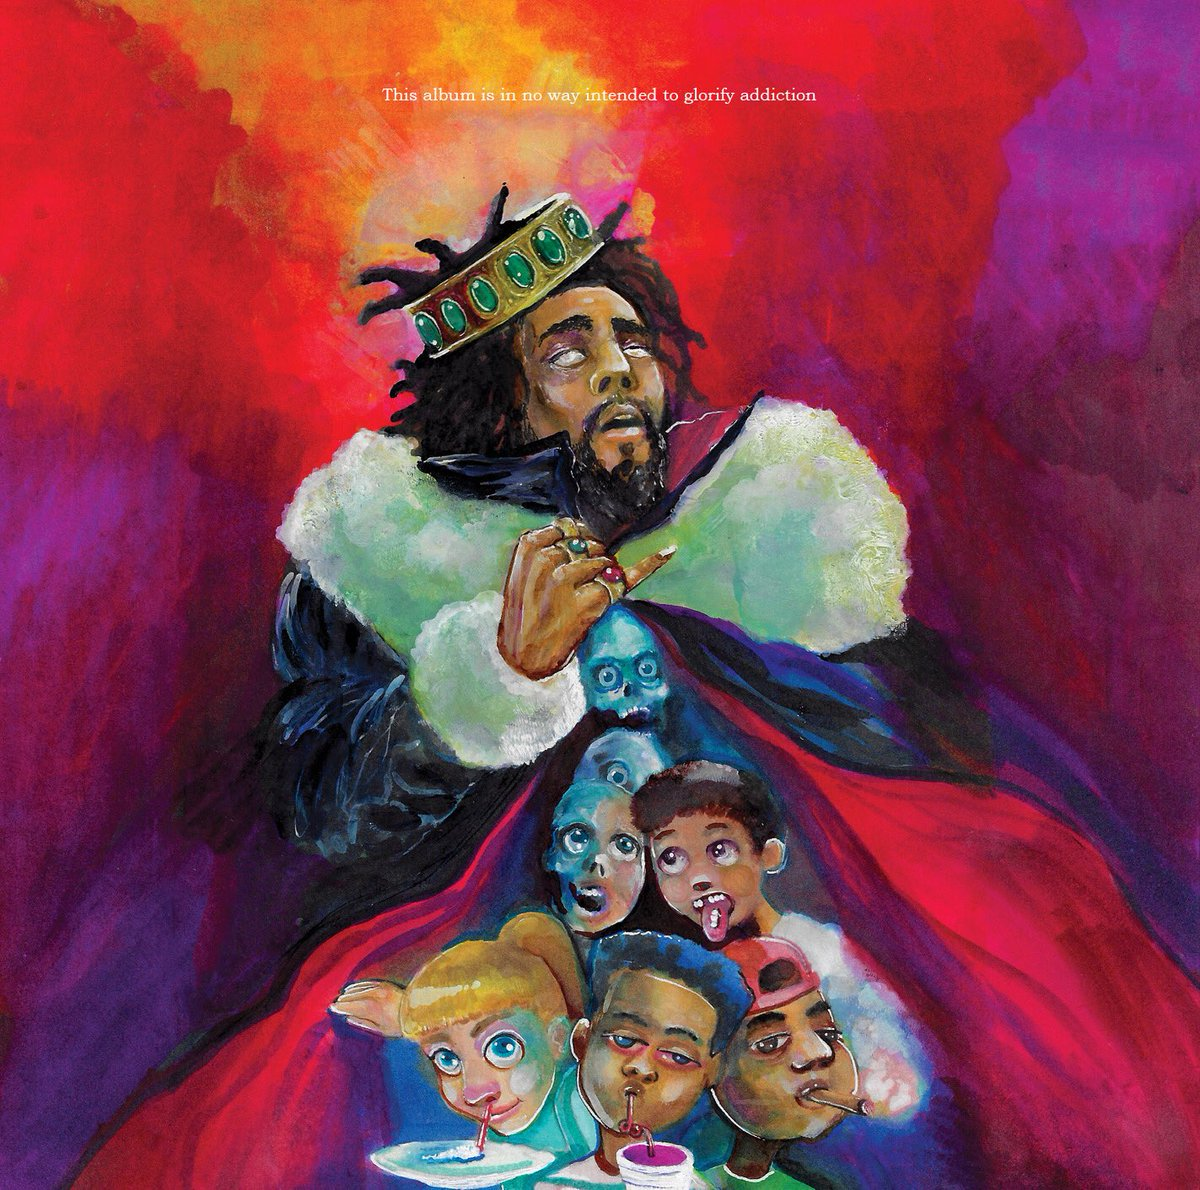 THE REAL IS BACK THE VILLE IS BACK  j. cole's new album 'K.O.D.' is here ������ https://t.co/uzbvCXVVOn https://t.co/QuSJd8xZAt